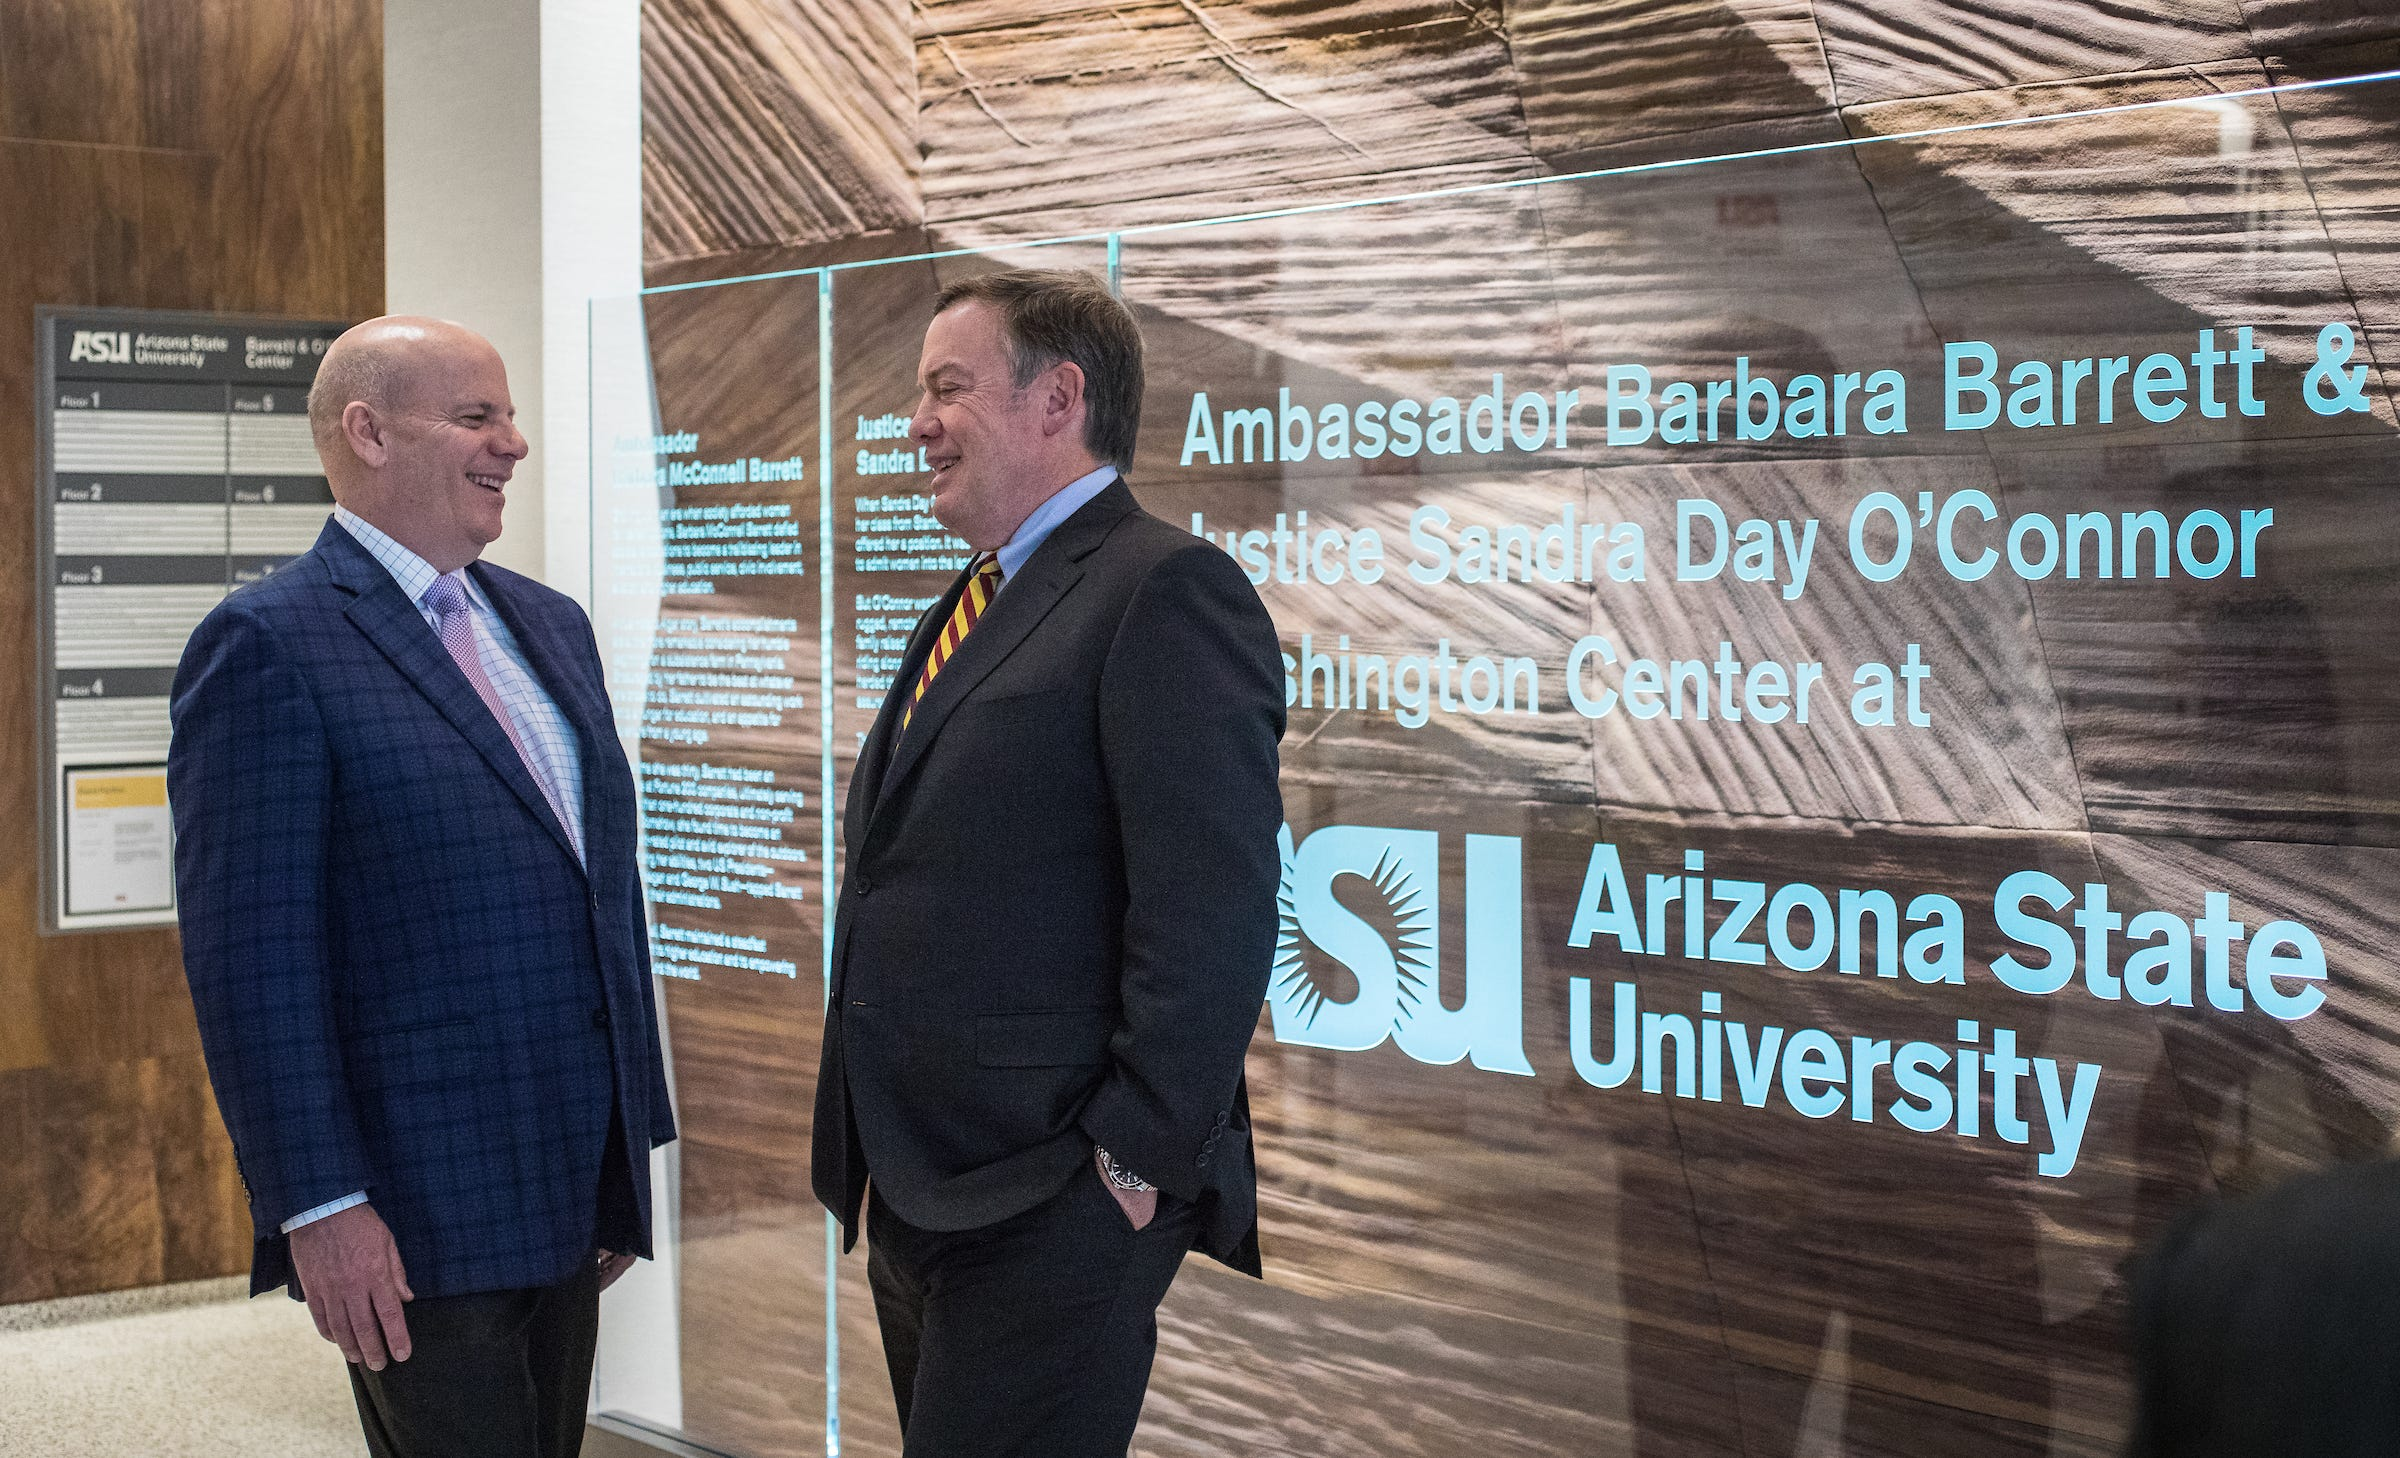 Why ASU spent $35 million for a building 10 minutes from the White House | Arizona Central